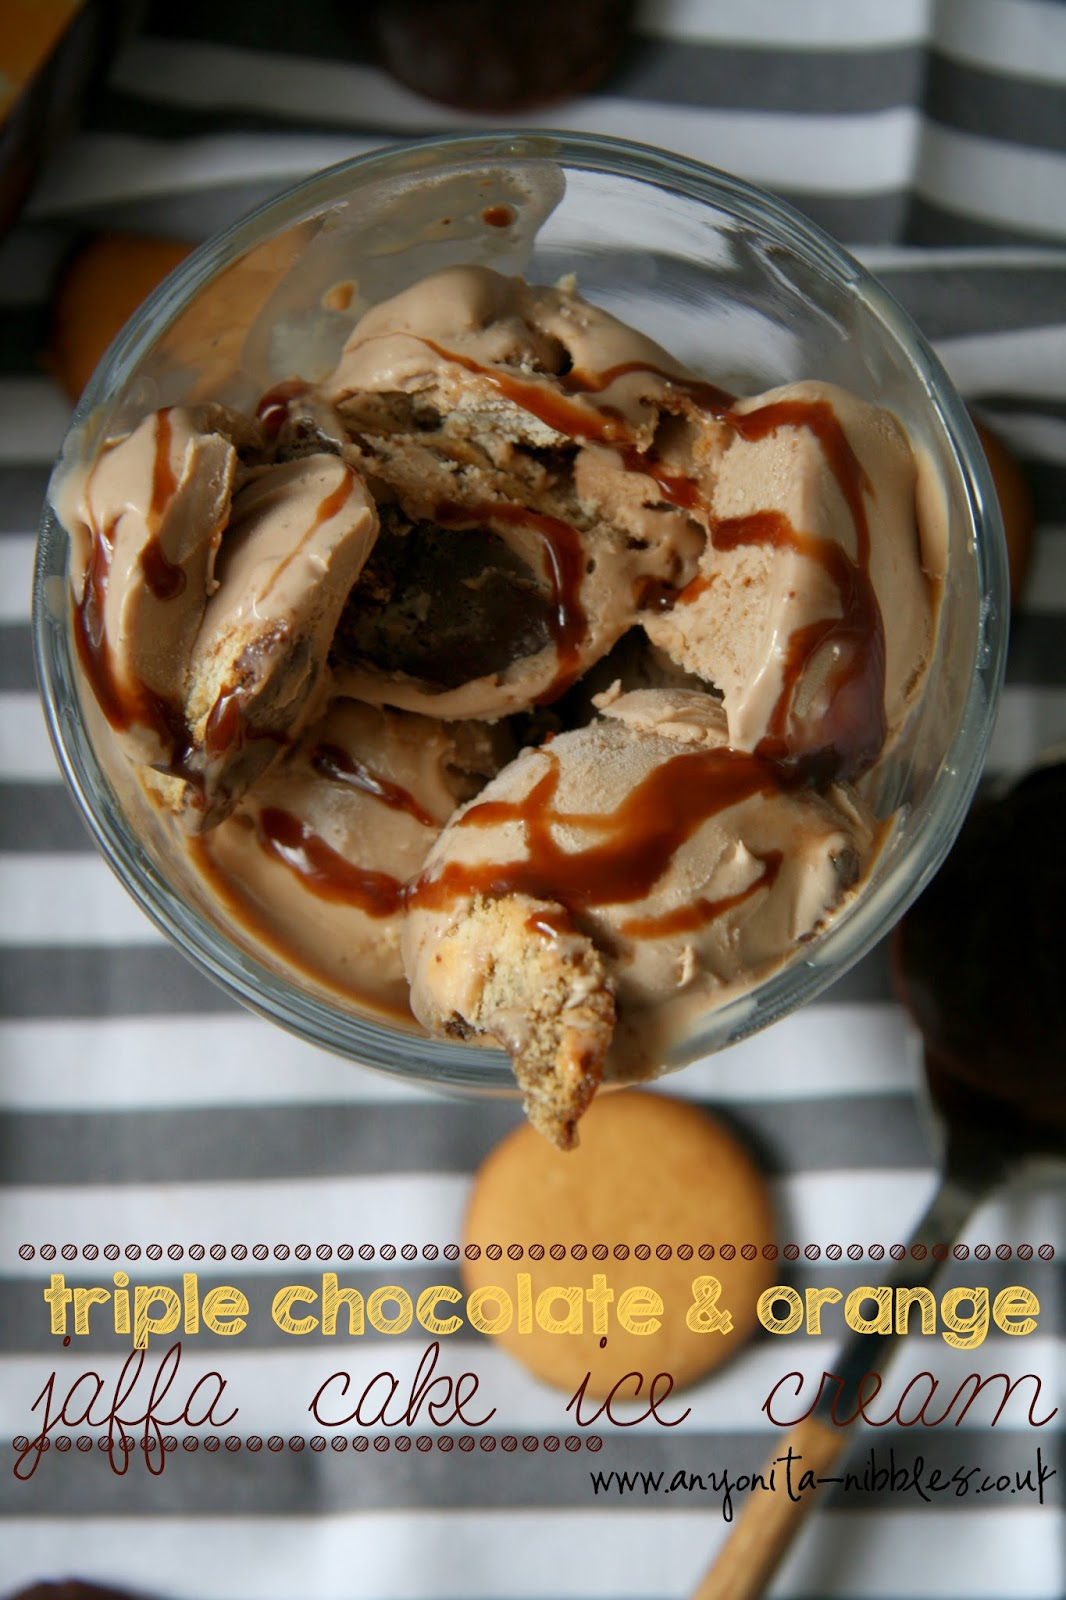 Triple chocolate & orange ice cream by Anyonita Nibbles